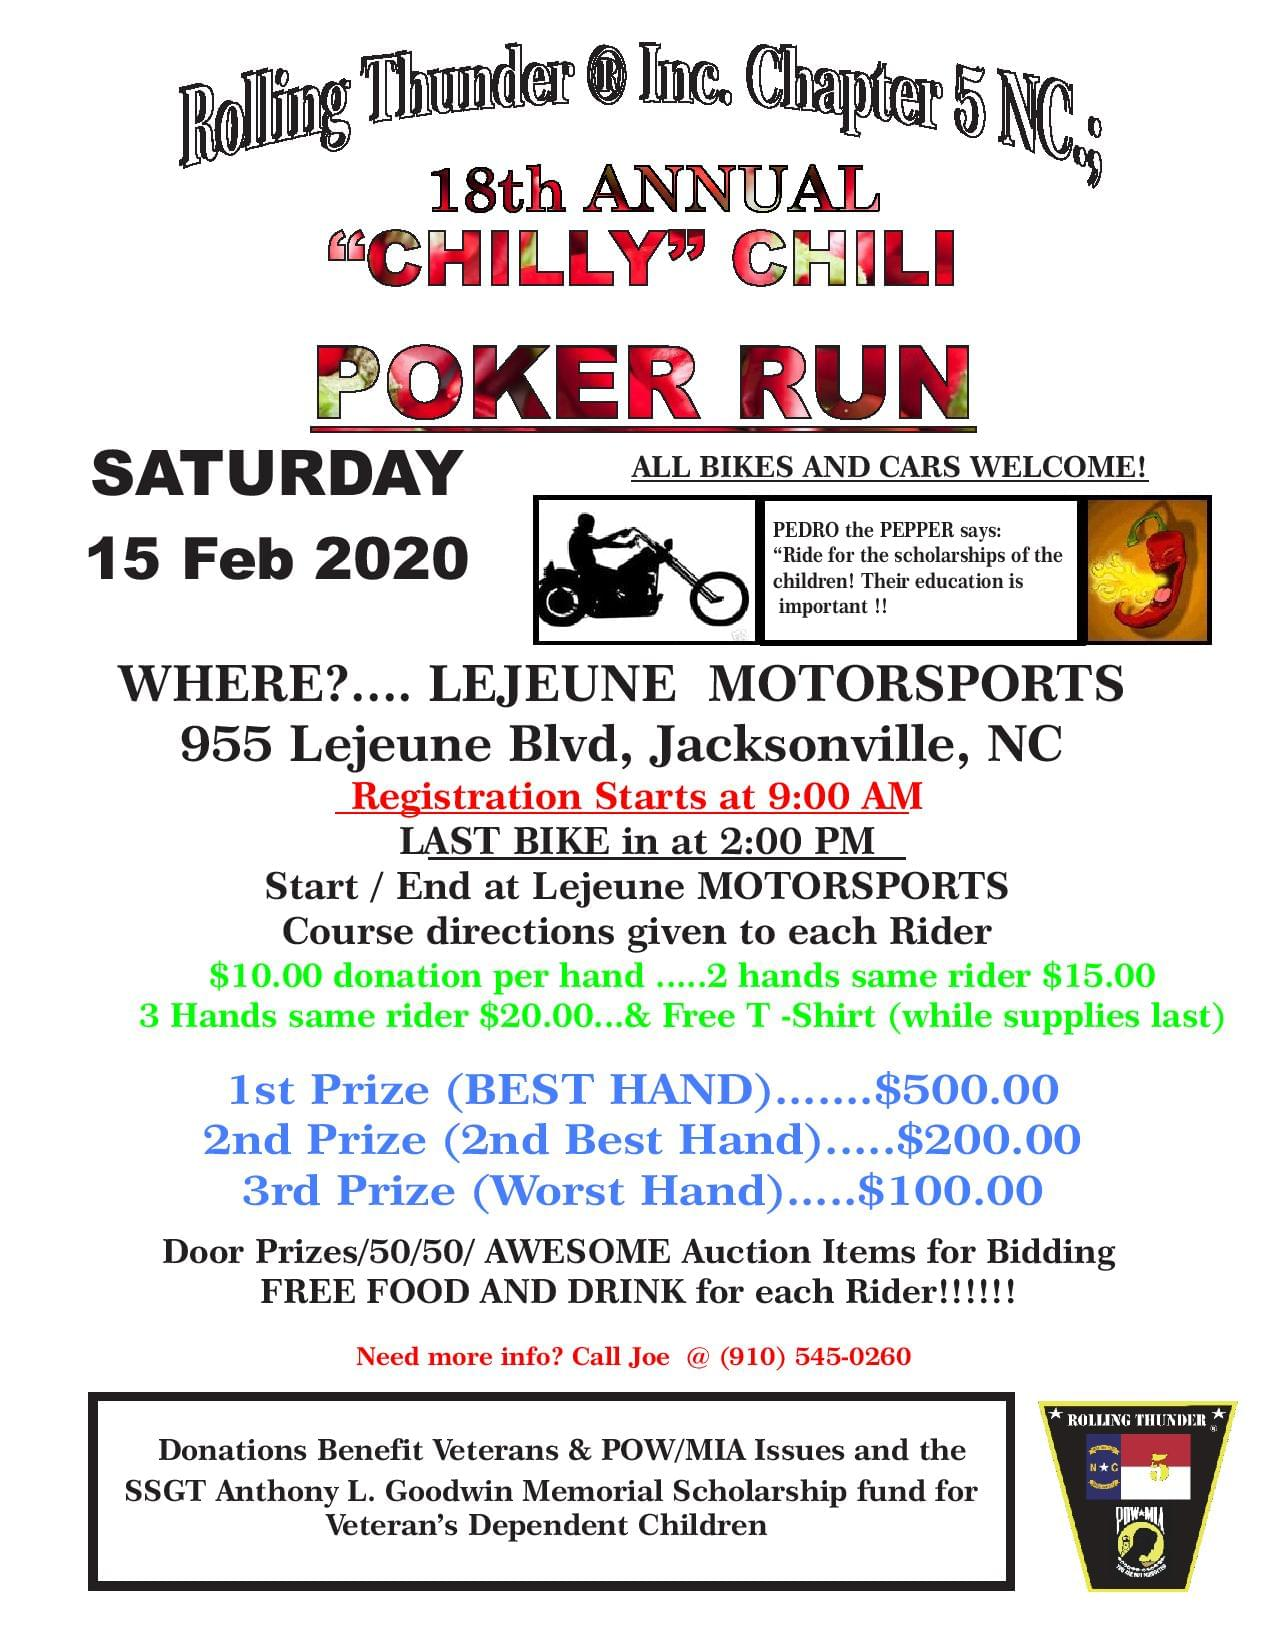 18th Annual Rolling Thunder®, Inc. NC 5 Chilly Chili Poker Run